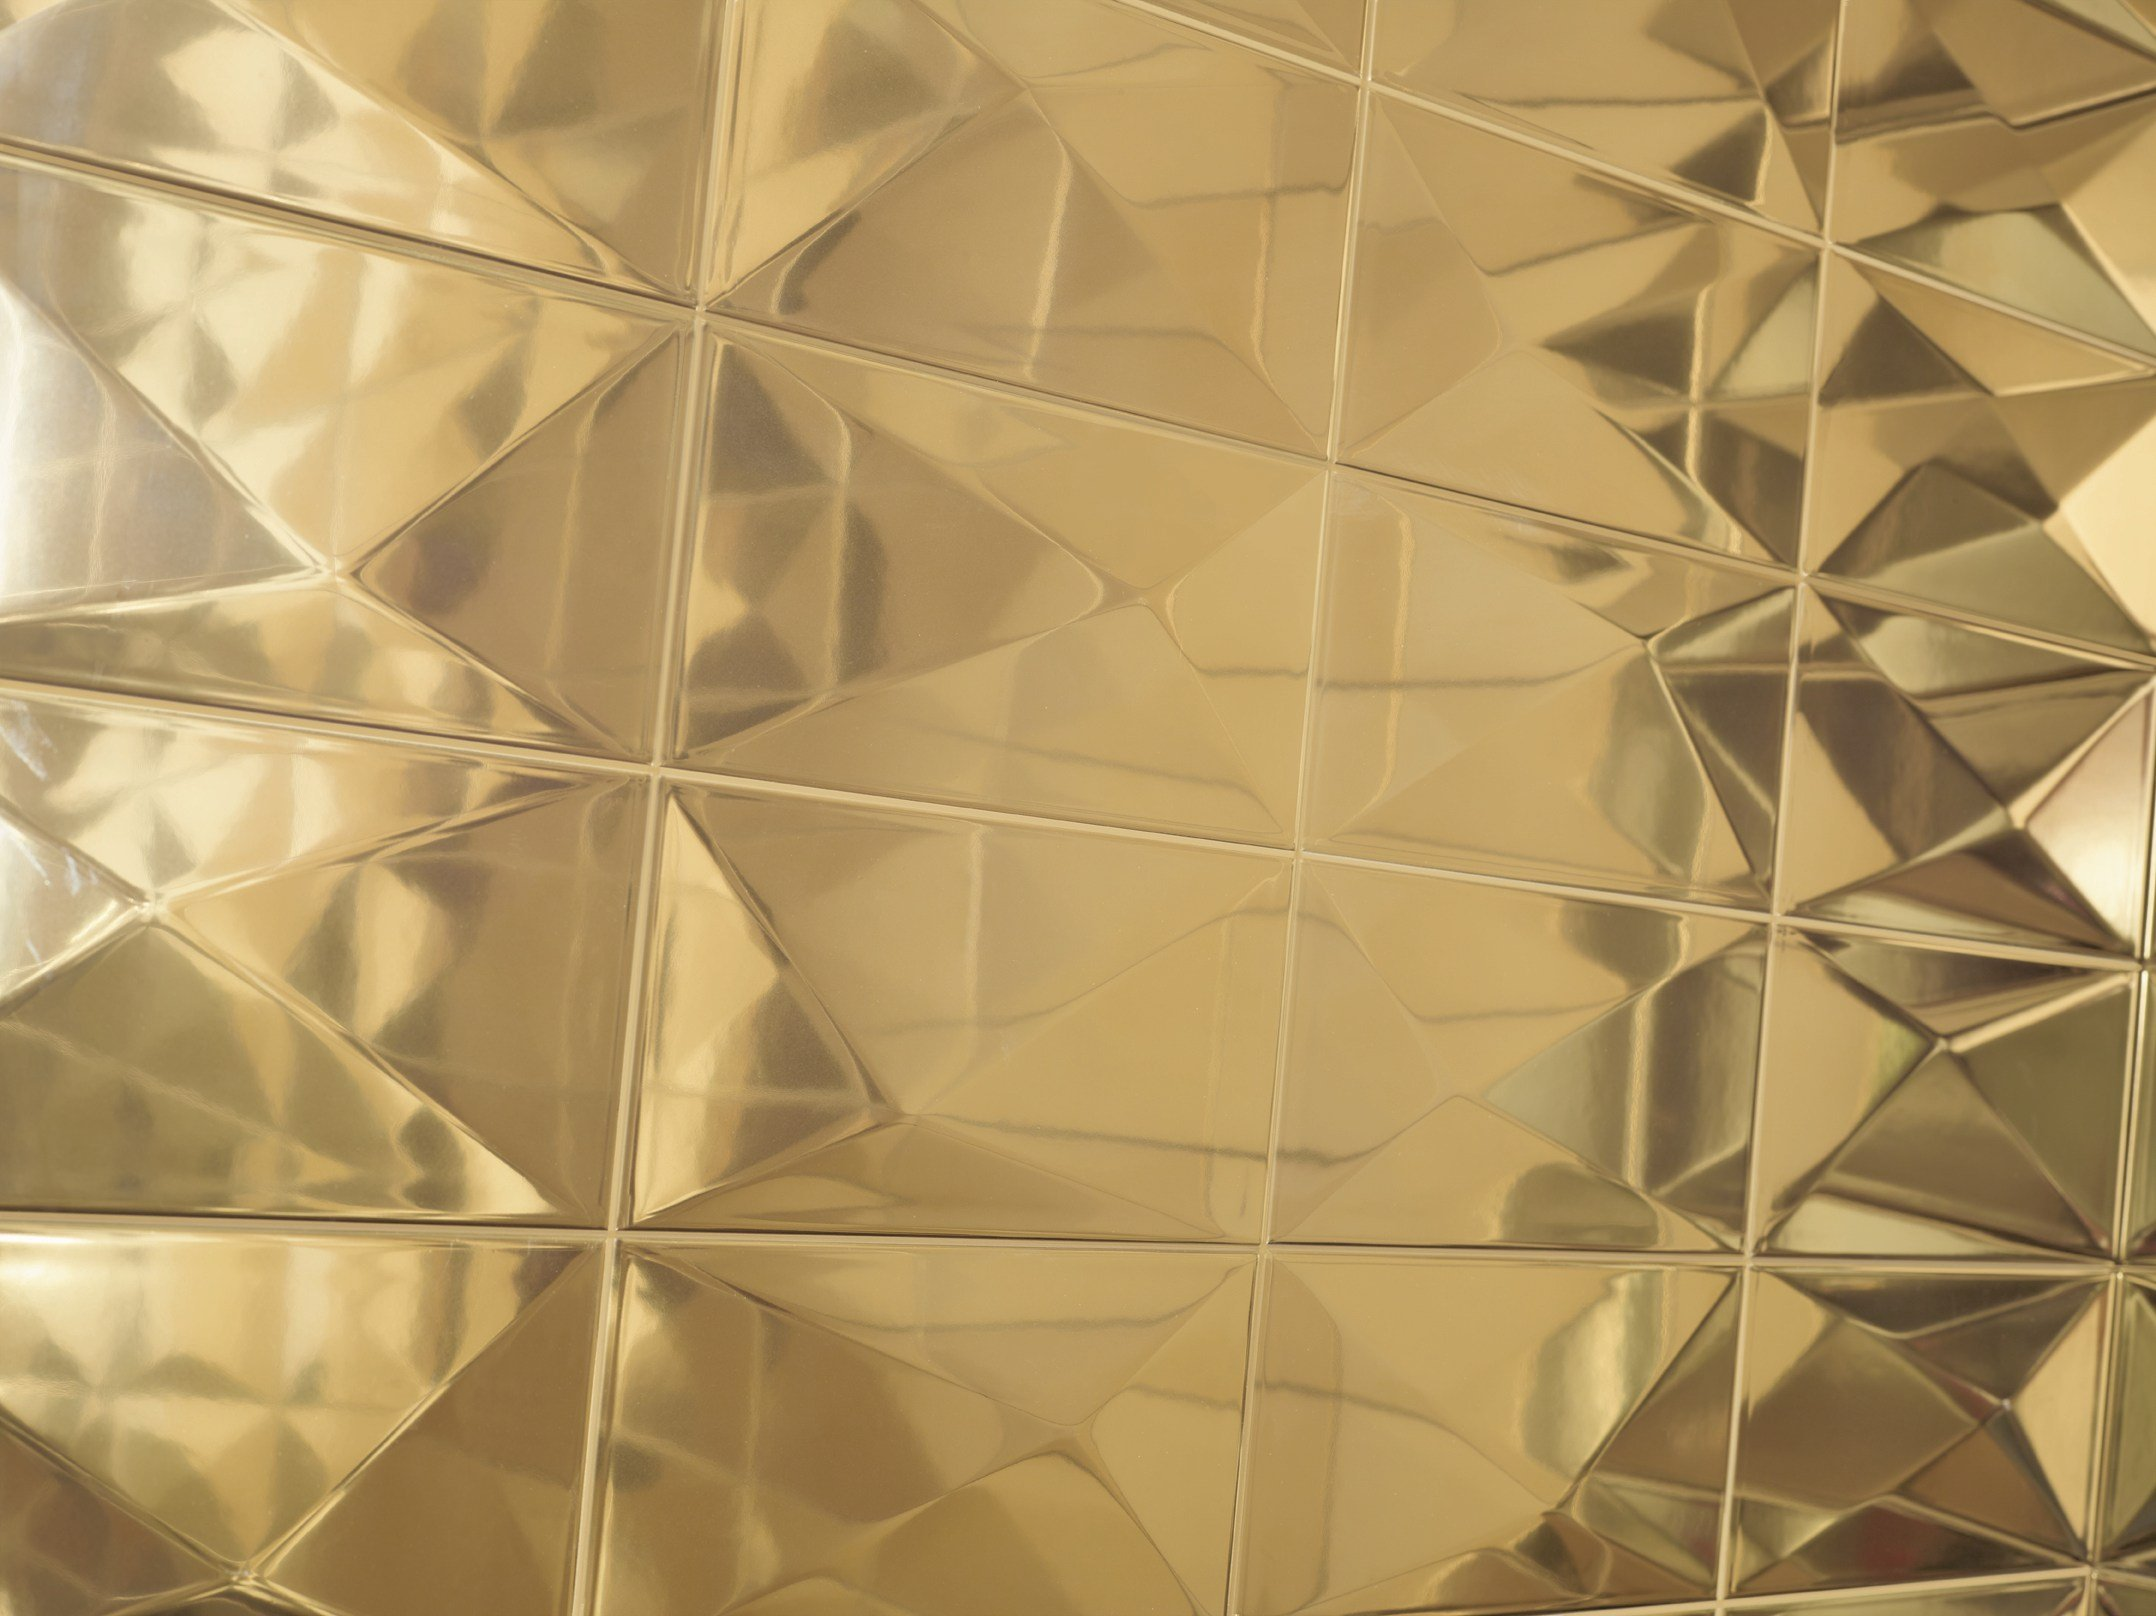 Ceramic 3d wall cladding wonder by gres panaria portugal s for 3d outdoor wall tiles